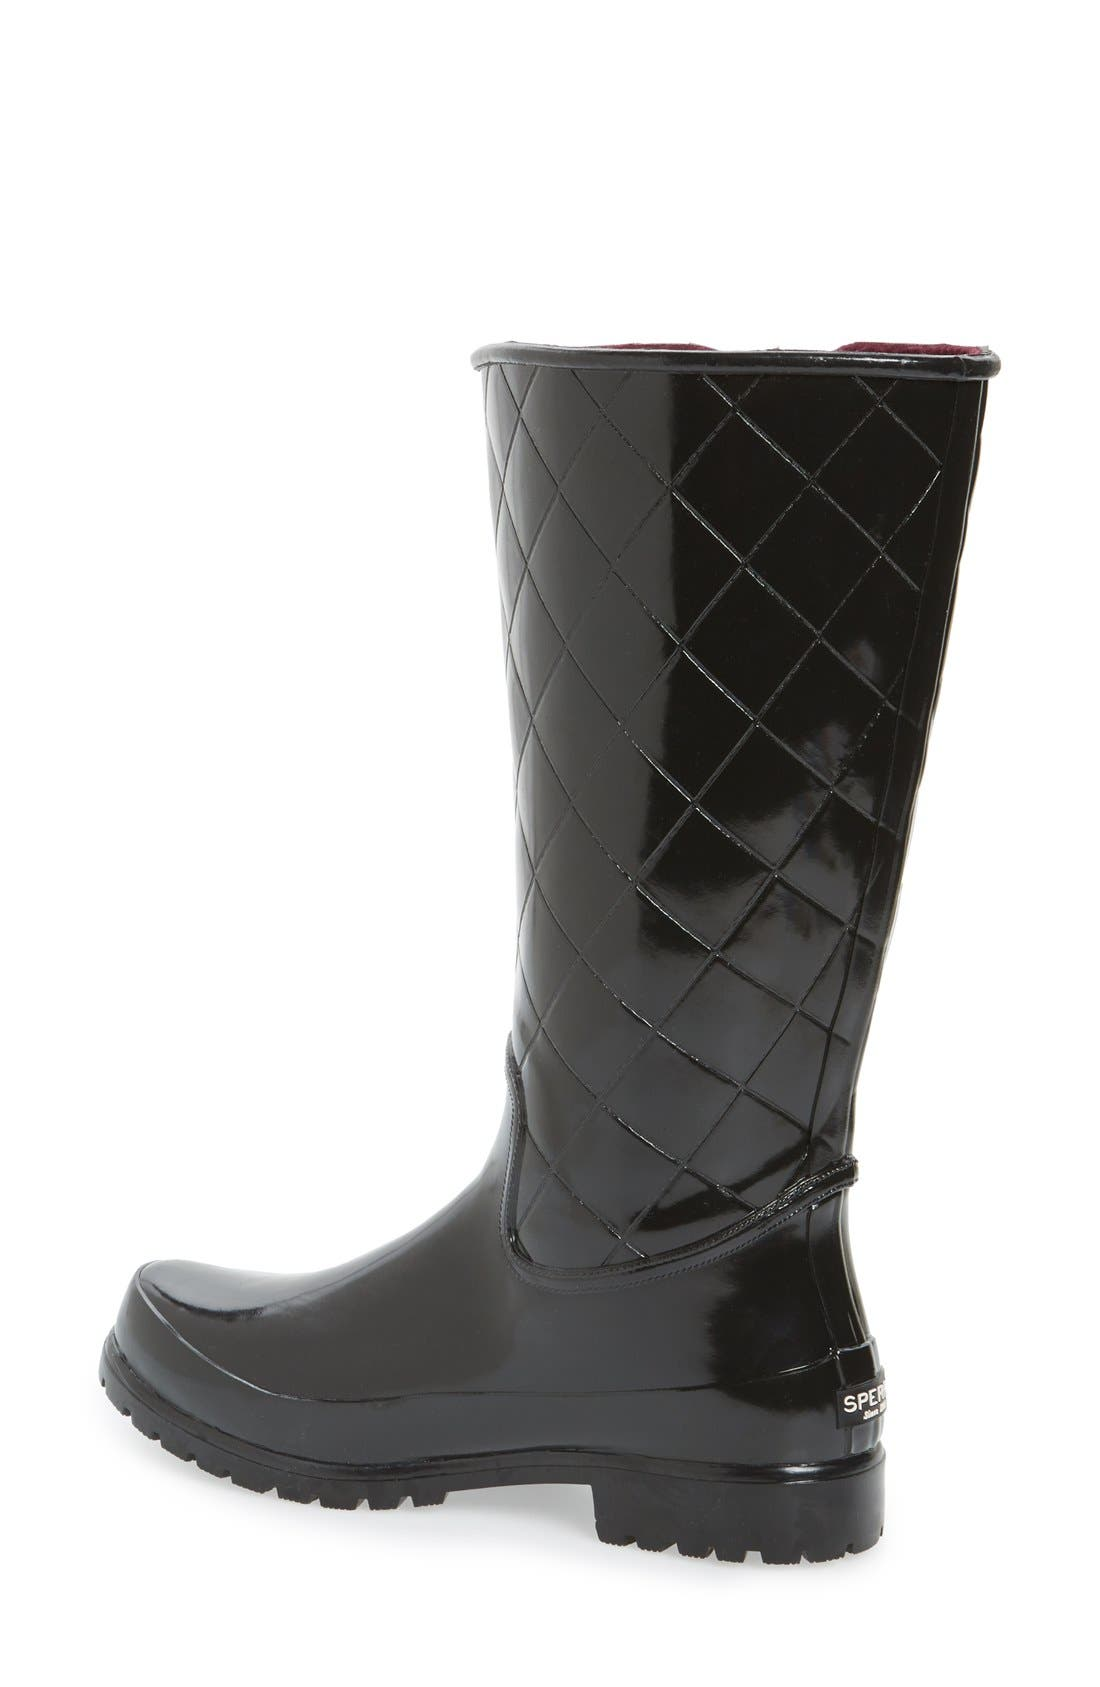 Alternate Image 2  - Sperry Top-Sider® 'Pelican' Tall Rain Boot (Women)